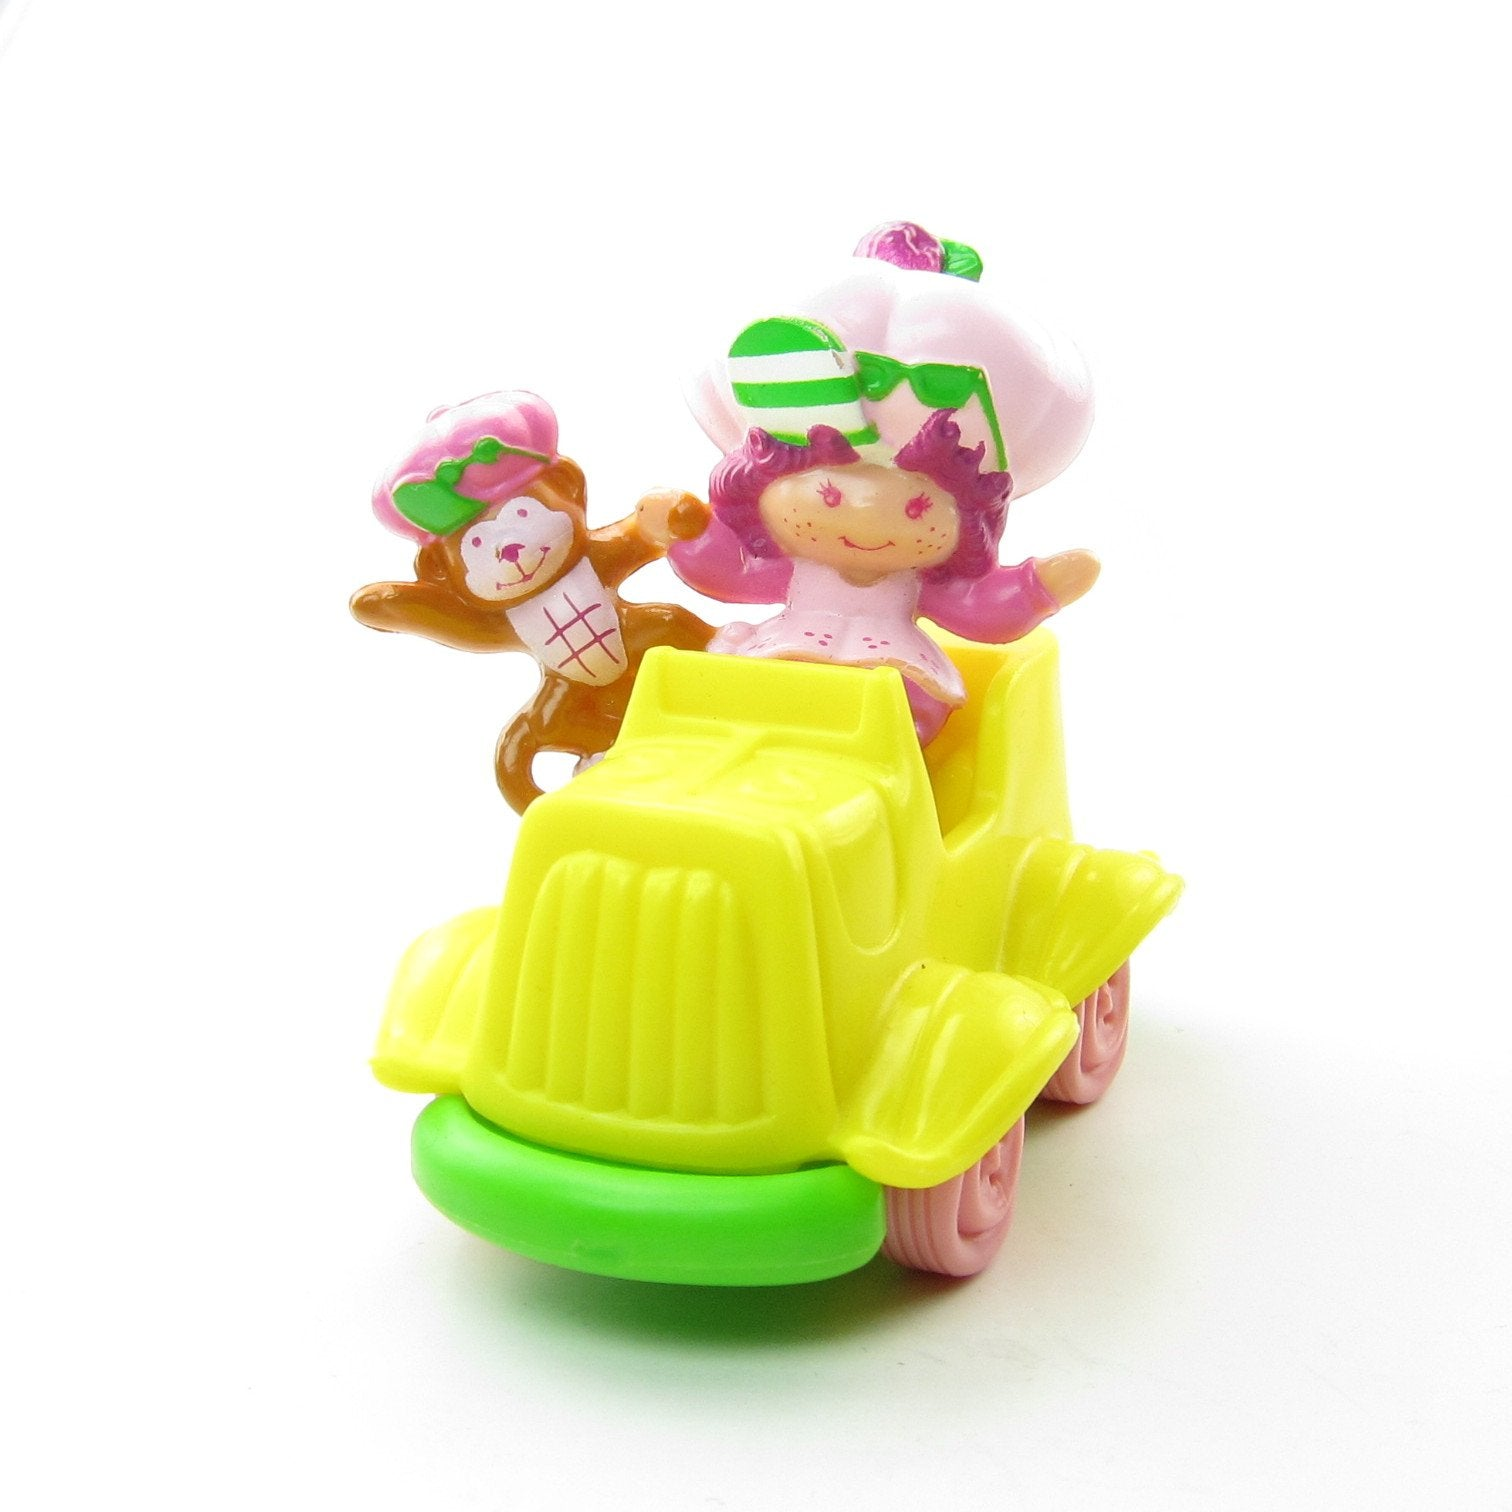 Raspberry Tart Riding in a Car with Rhubarb miniature figurine